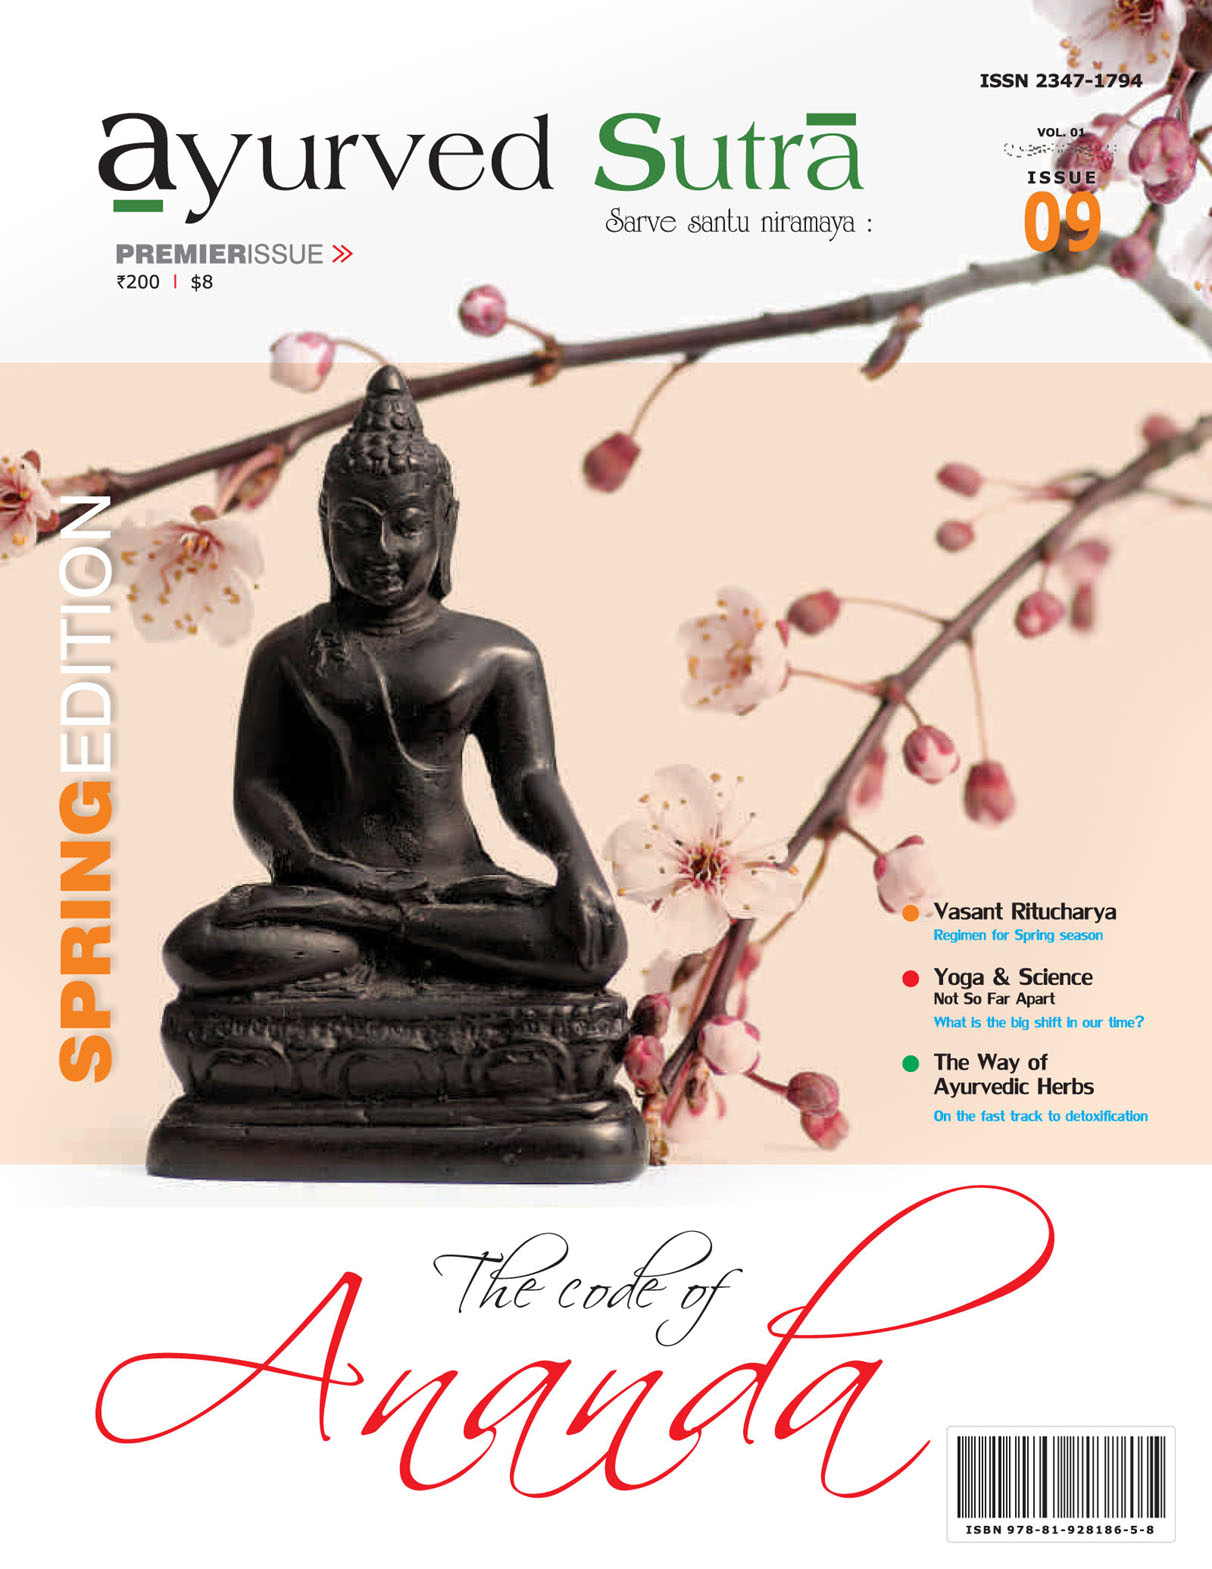 Ayurvedsutra - Issue 9 - Spring Special